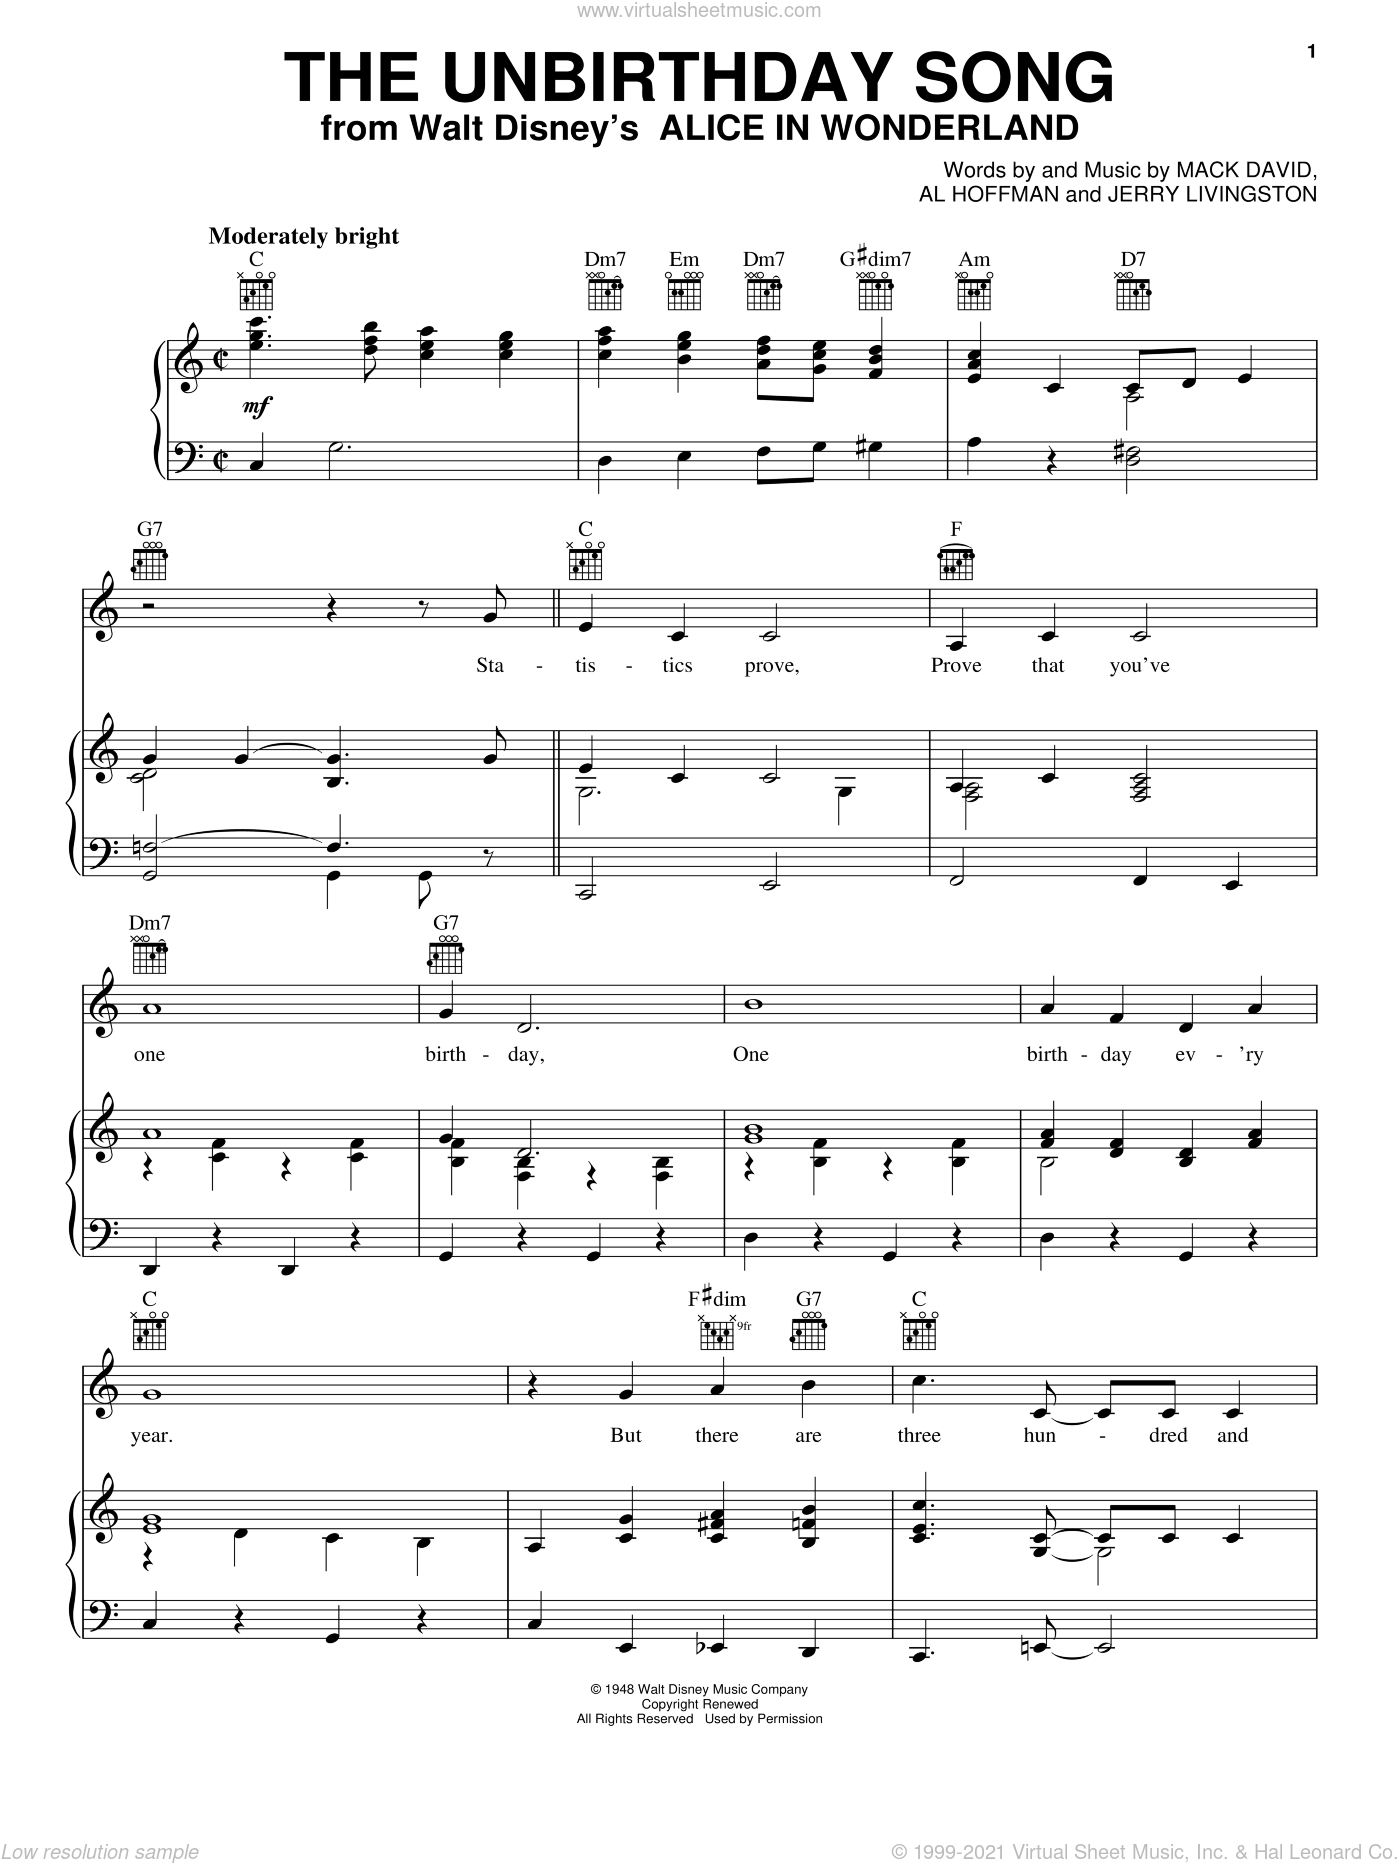 The Unbirthday Song sheet music for voice, piano or guitar by Jerry Livingston, Al Hoffman and Mack David. Score Image Preview.